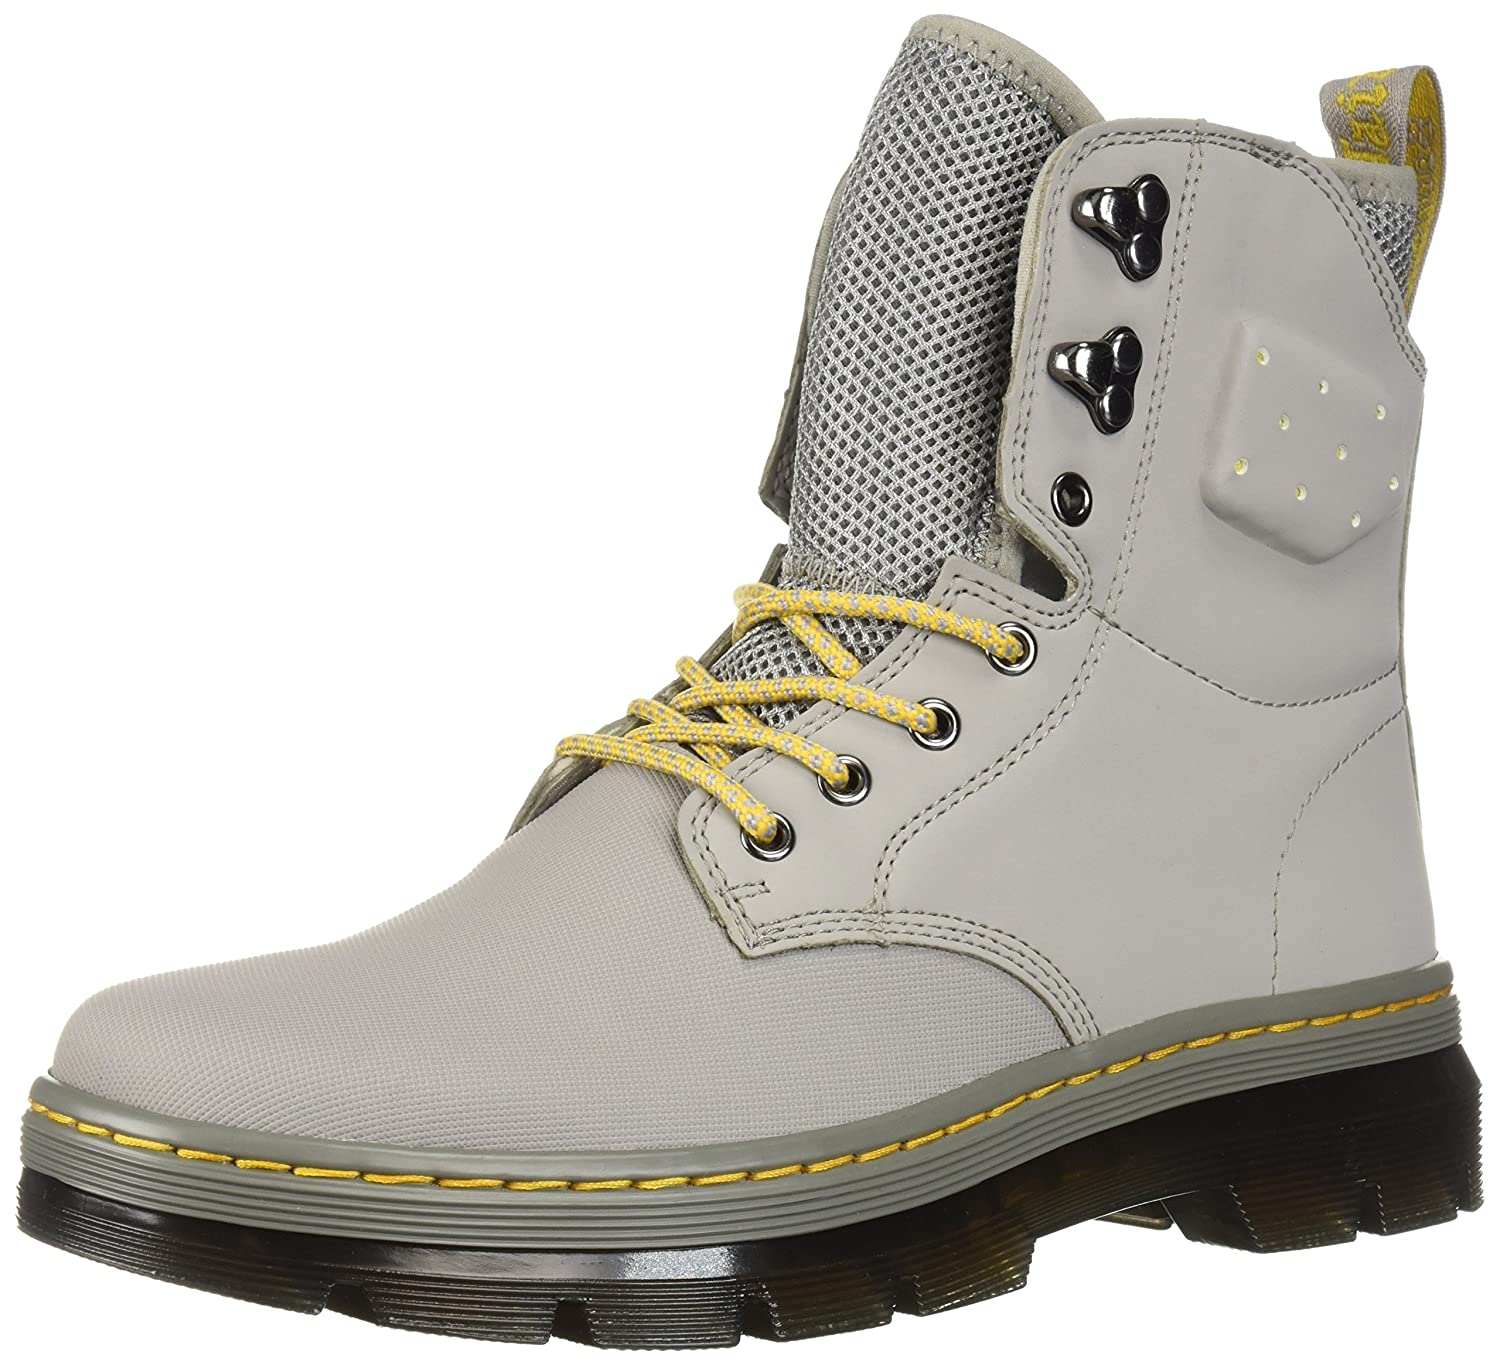 Dr. Martens Quinton Fashion Boot B071K21BQZ 11 Medium UK (US Men's 12 US)|Grey